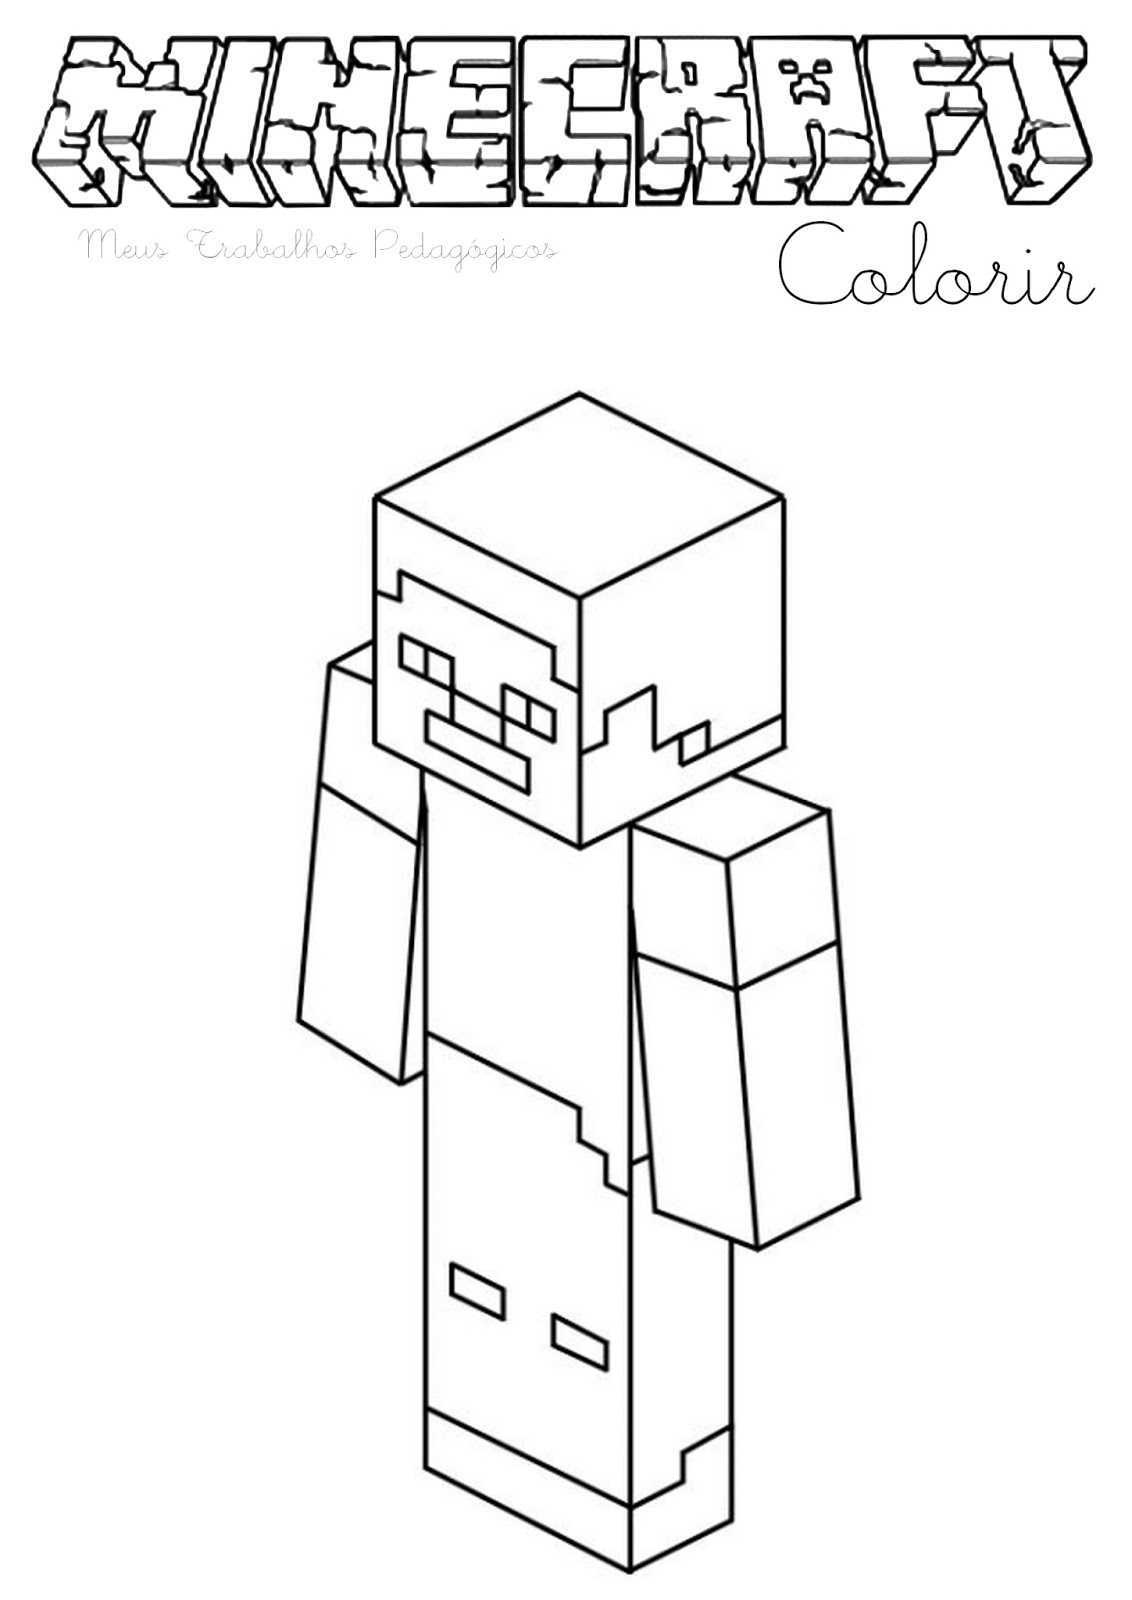 coloring pages minecraft stampylongnose halloween - photo#42